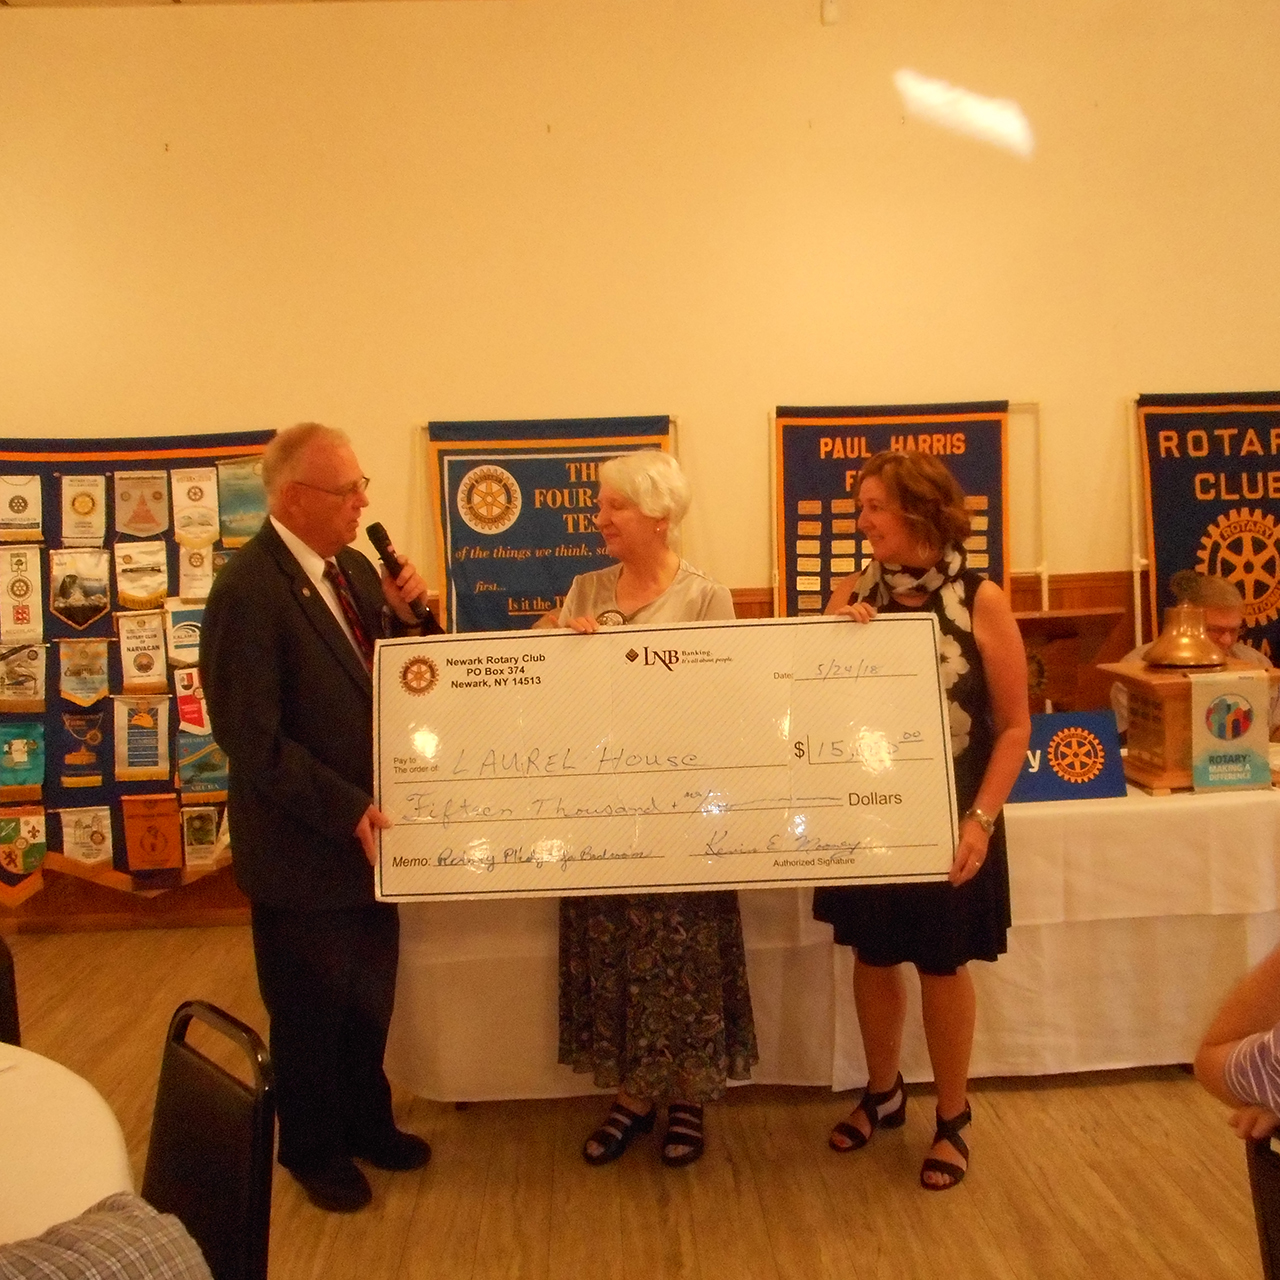 Rotary completes major donation to Laurel House